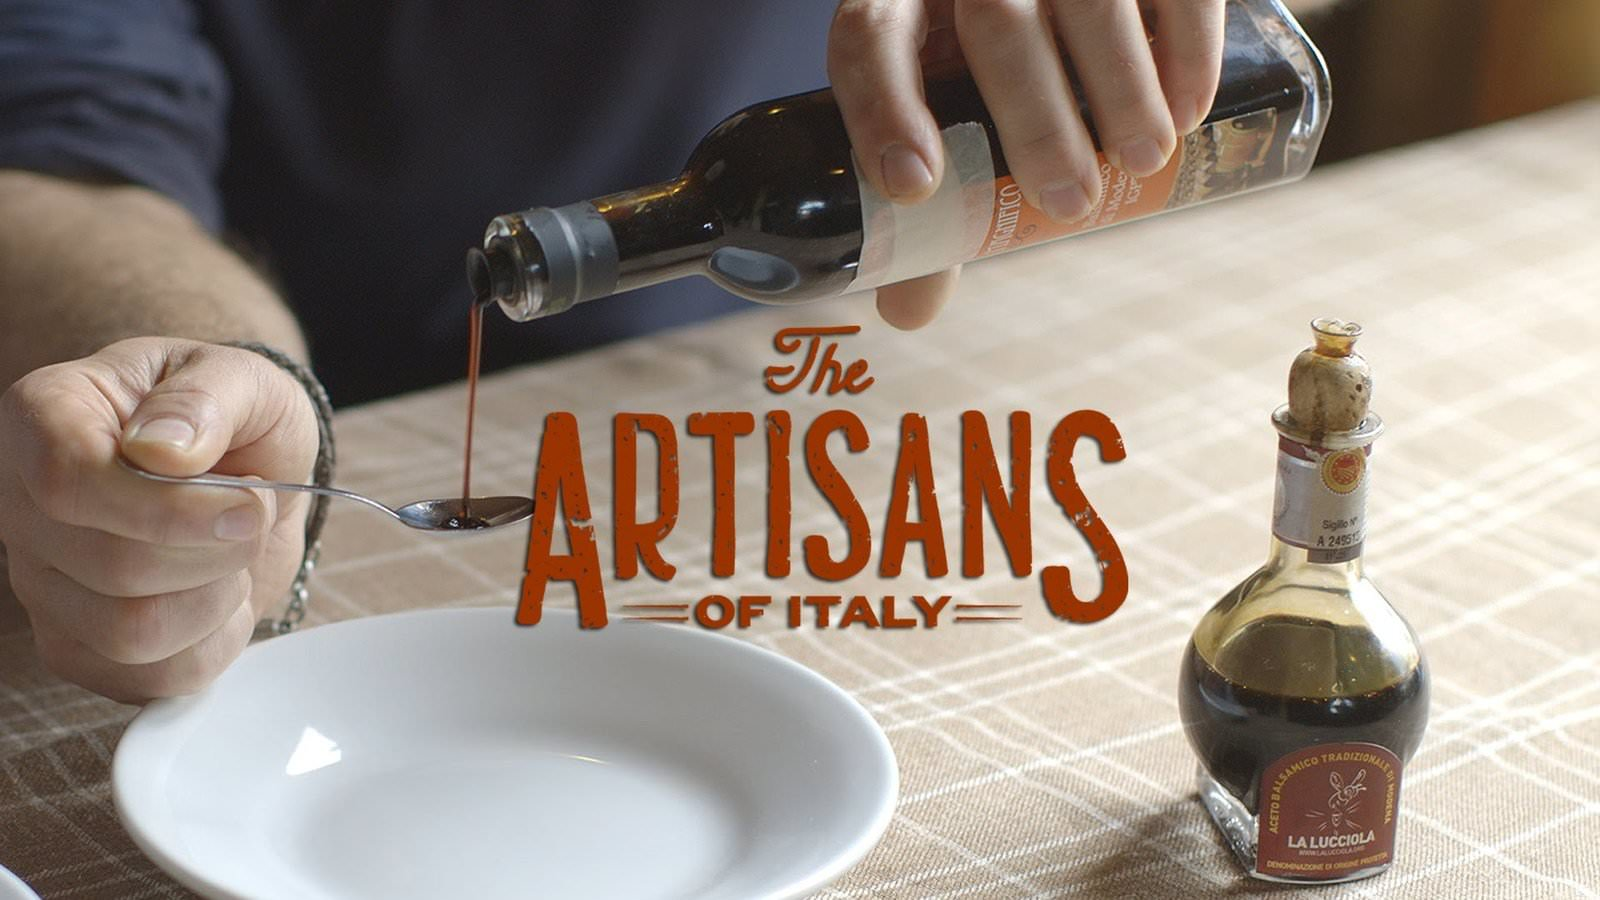 the-artisans-of-italy